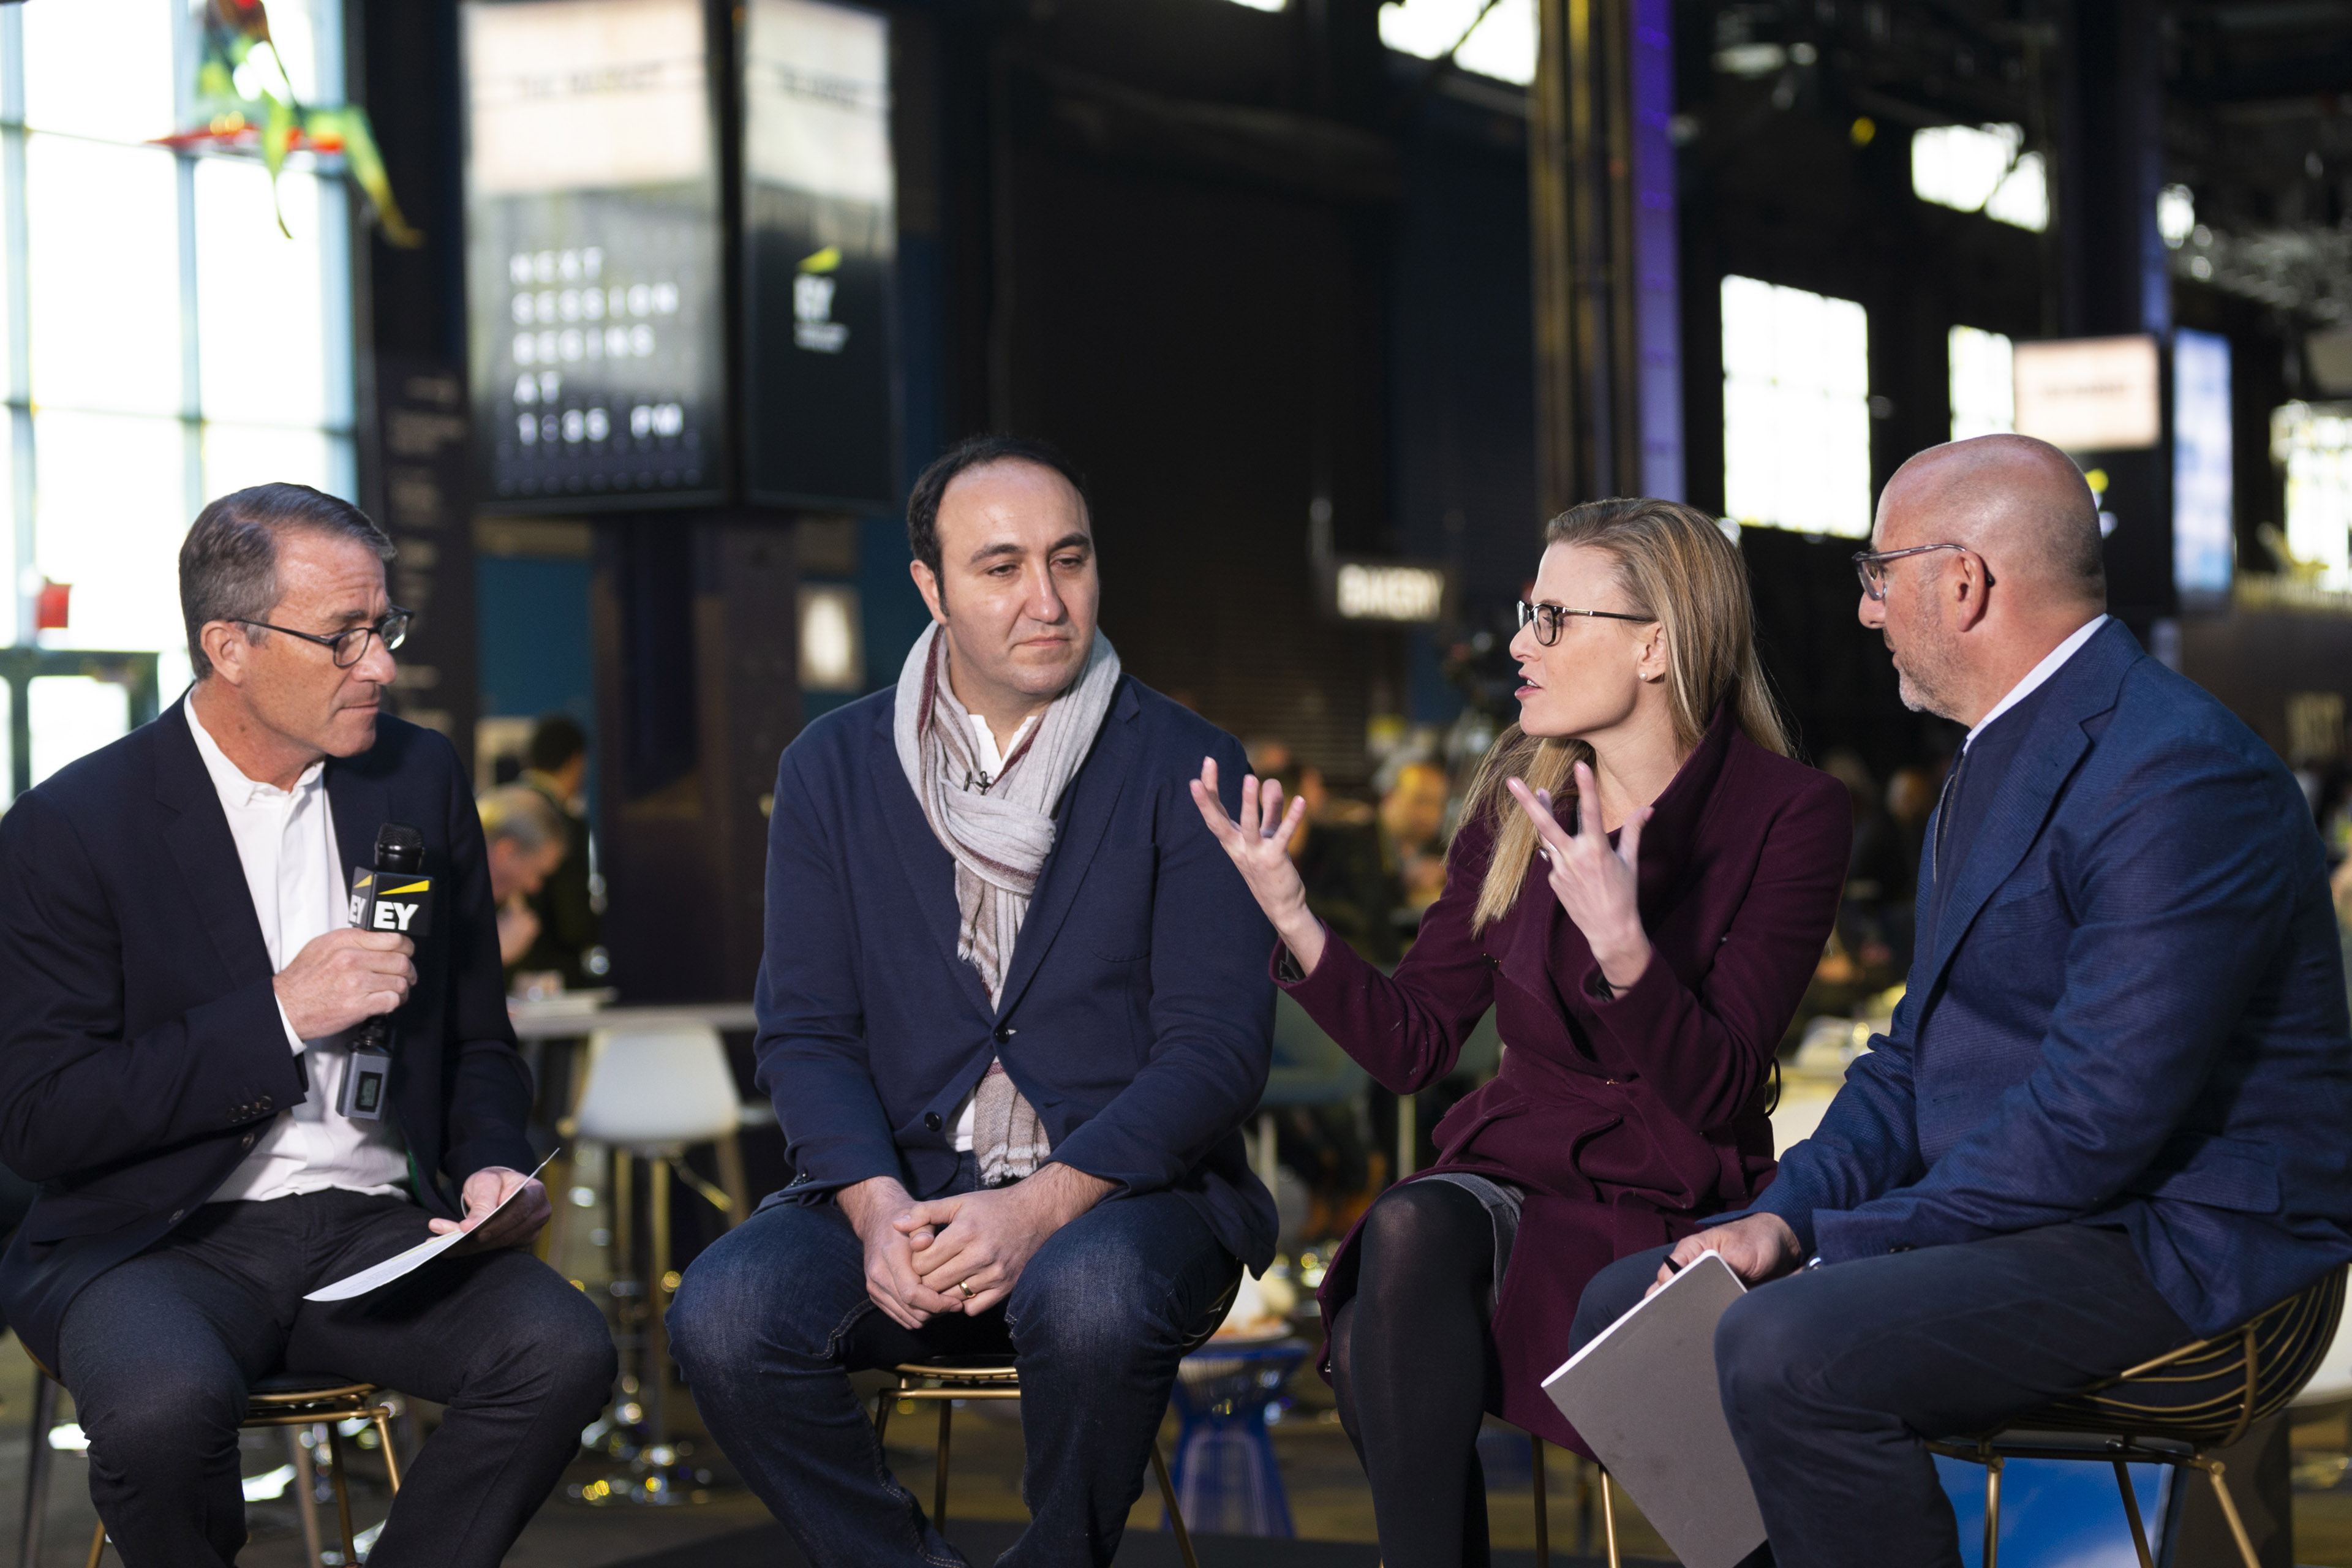 Bill Kanarick, EY Global Customer Leader; Tali Sharot, Director, Affective Brain Lab; and Emrah Gultekin, Co-founder, Chooch